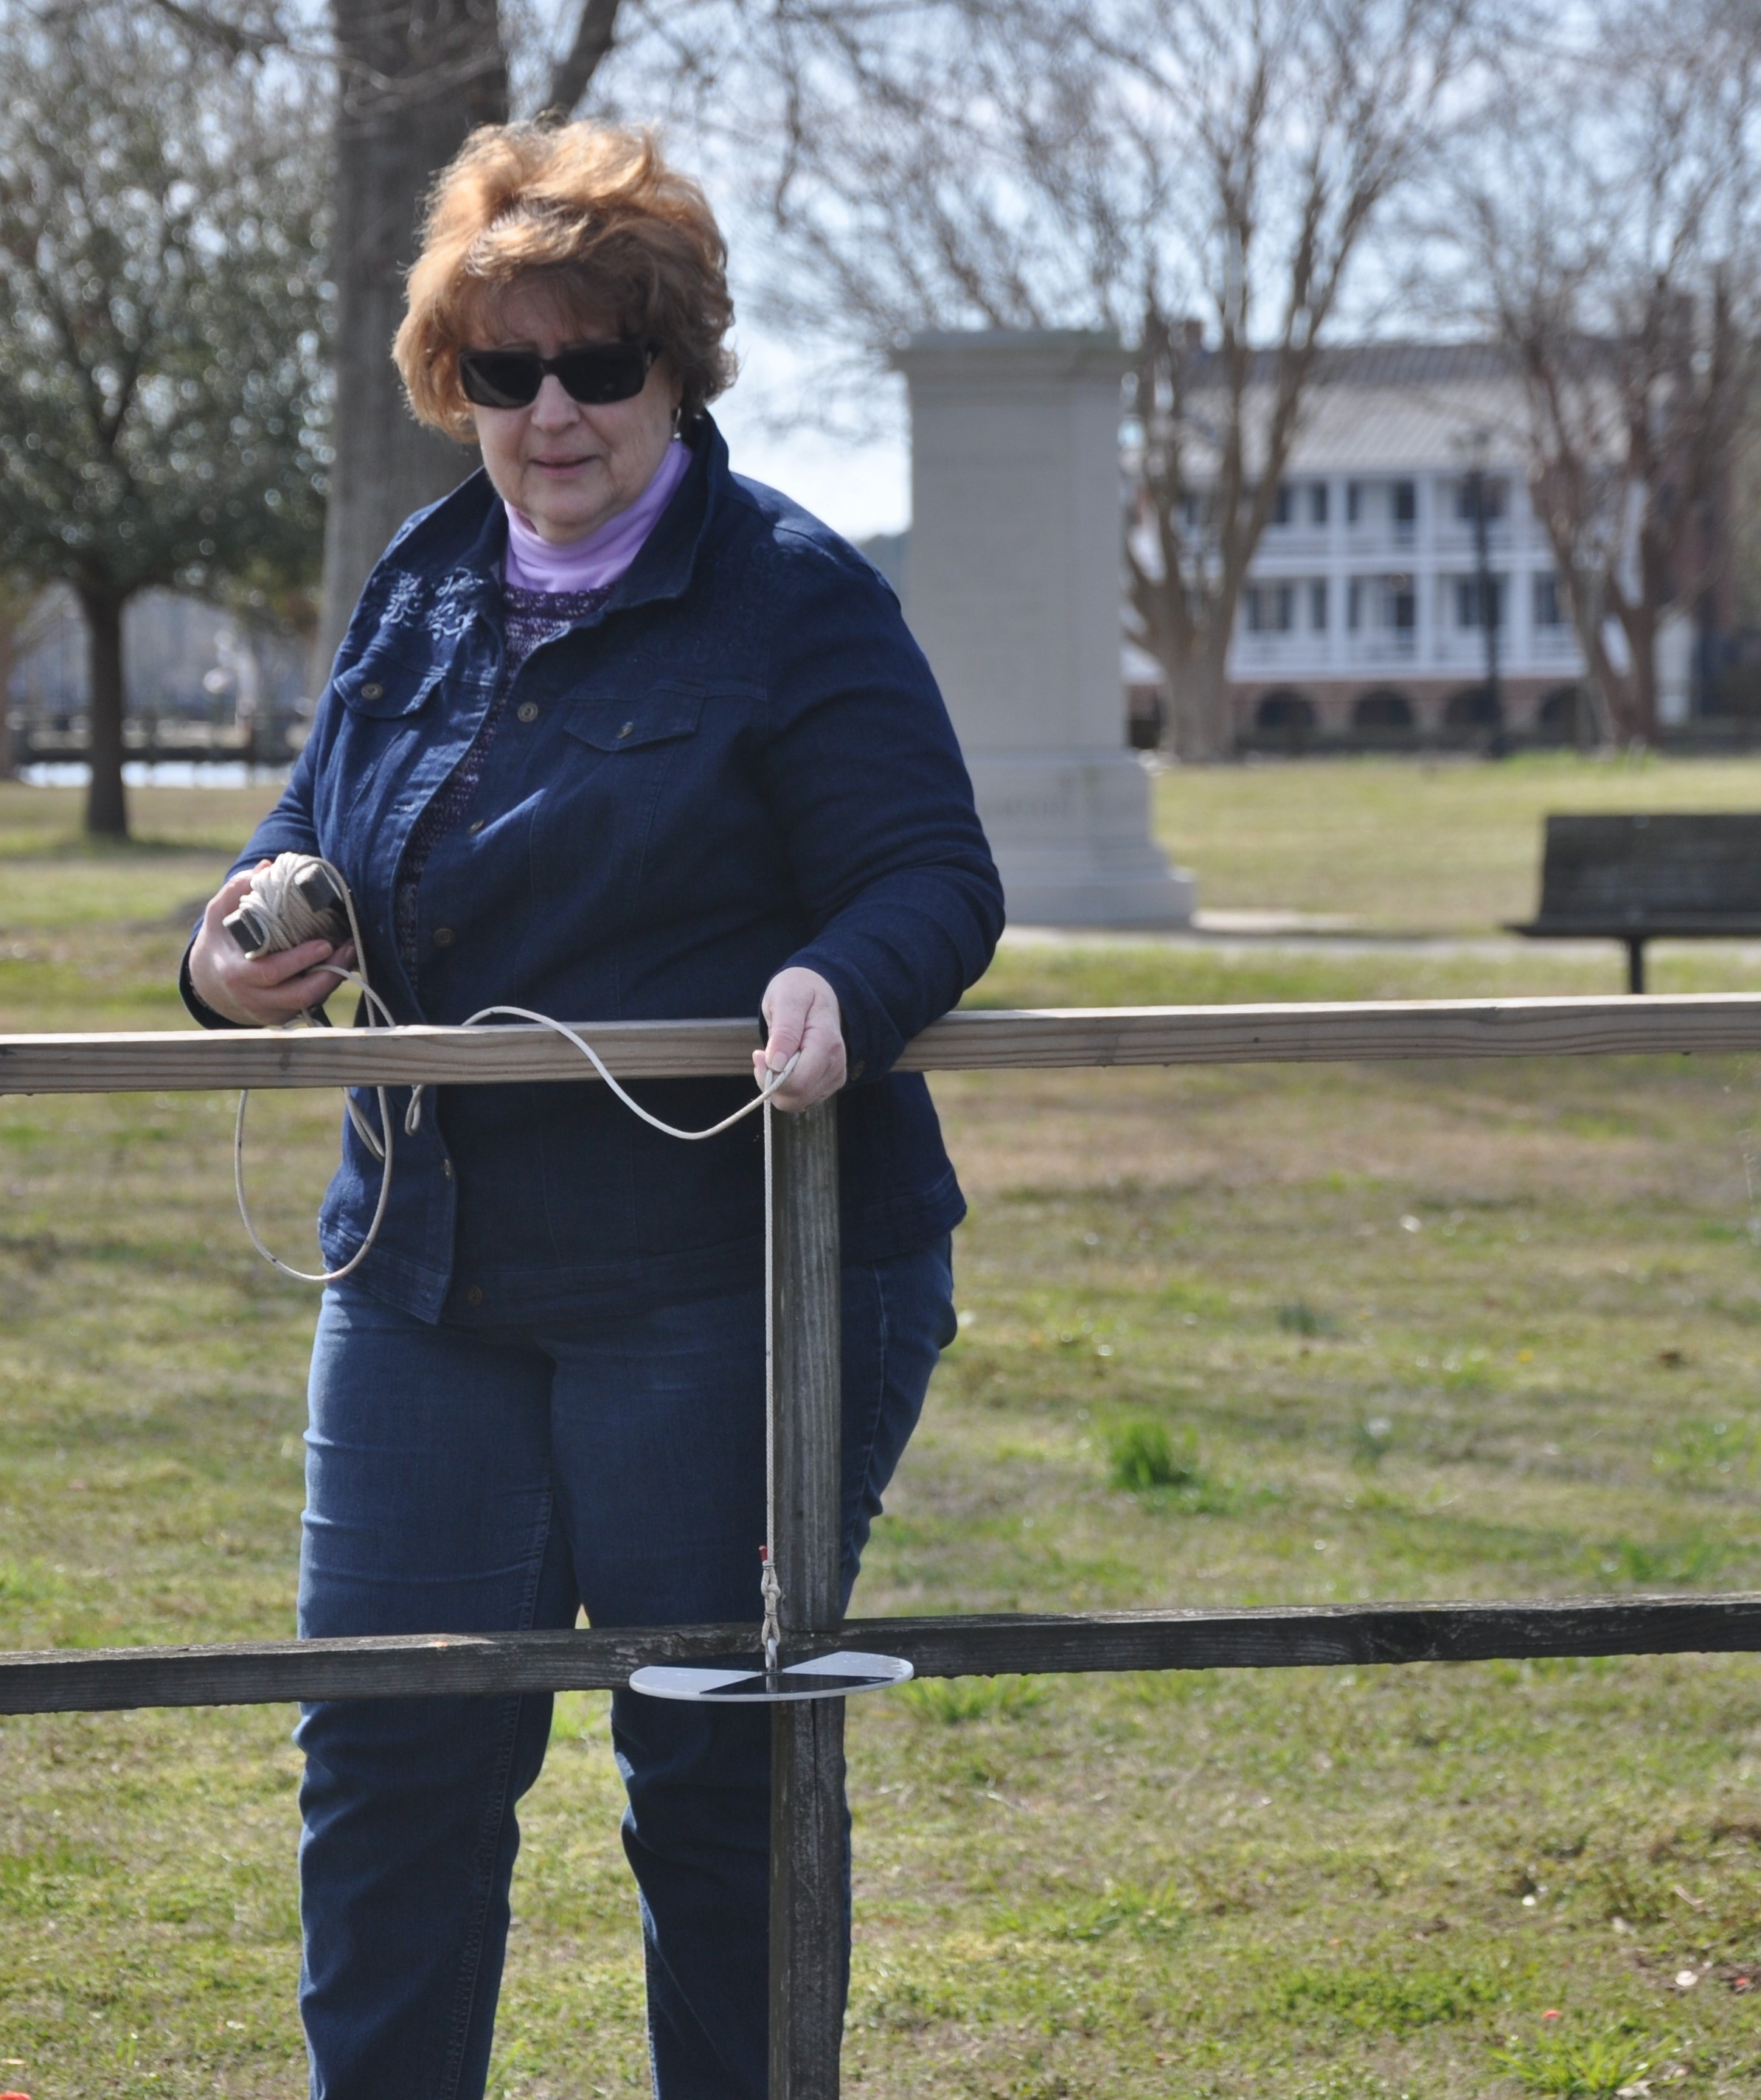 Colleen Karl, of the Chowan Edenton Environmental Group, says her community has many questions about the resurgence of blue-green algal blooms. Courtesy of Colleen Karl.